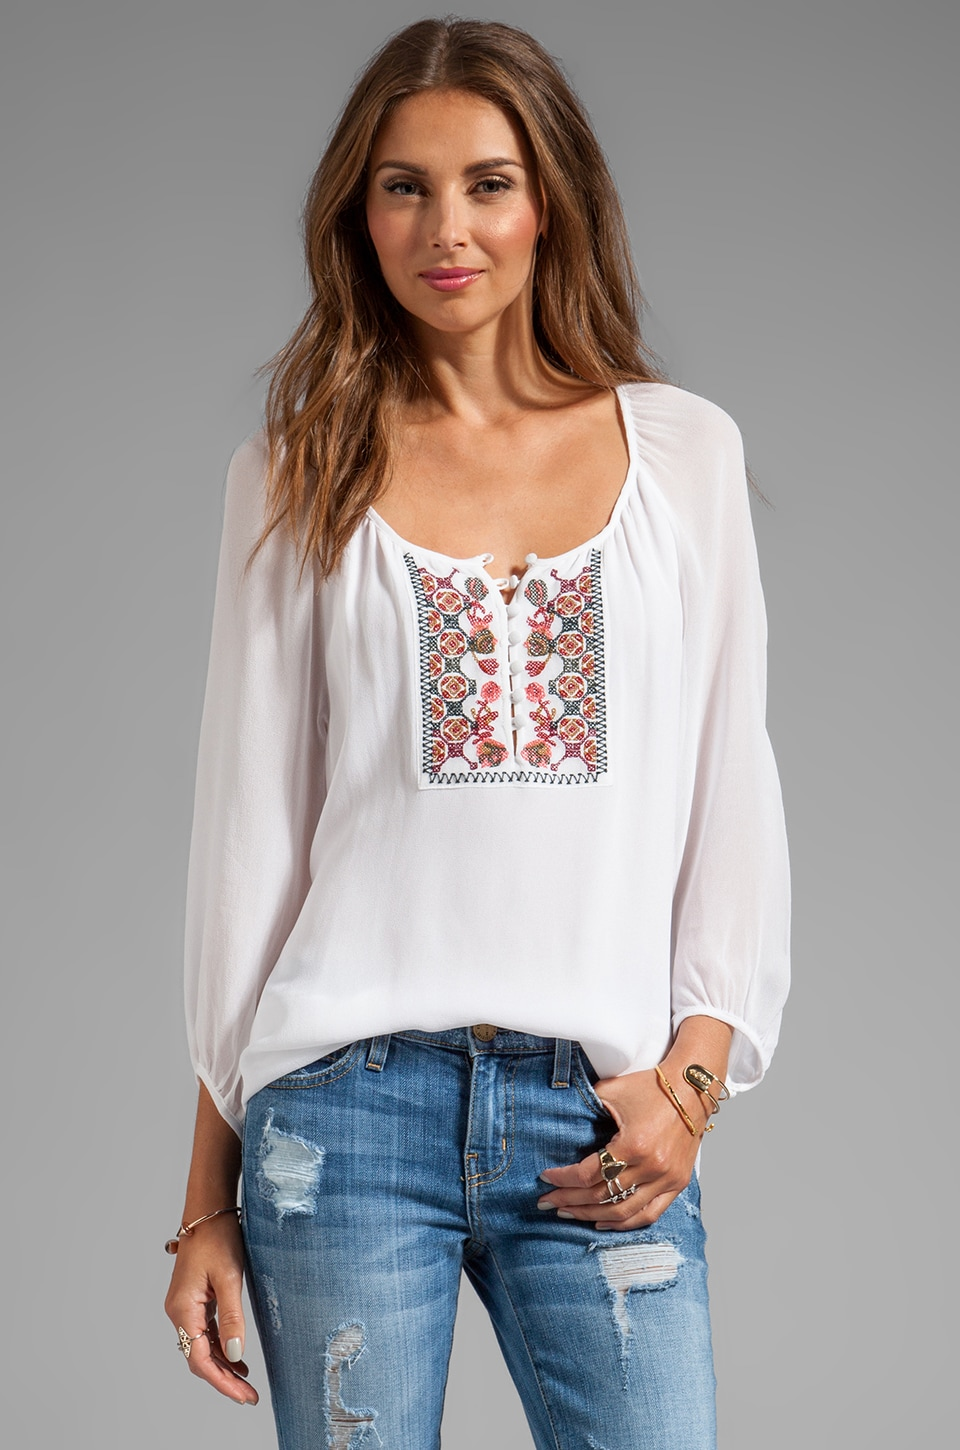 Sanctuary Soft Wovens Wild Belle Blouse in White